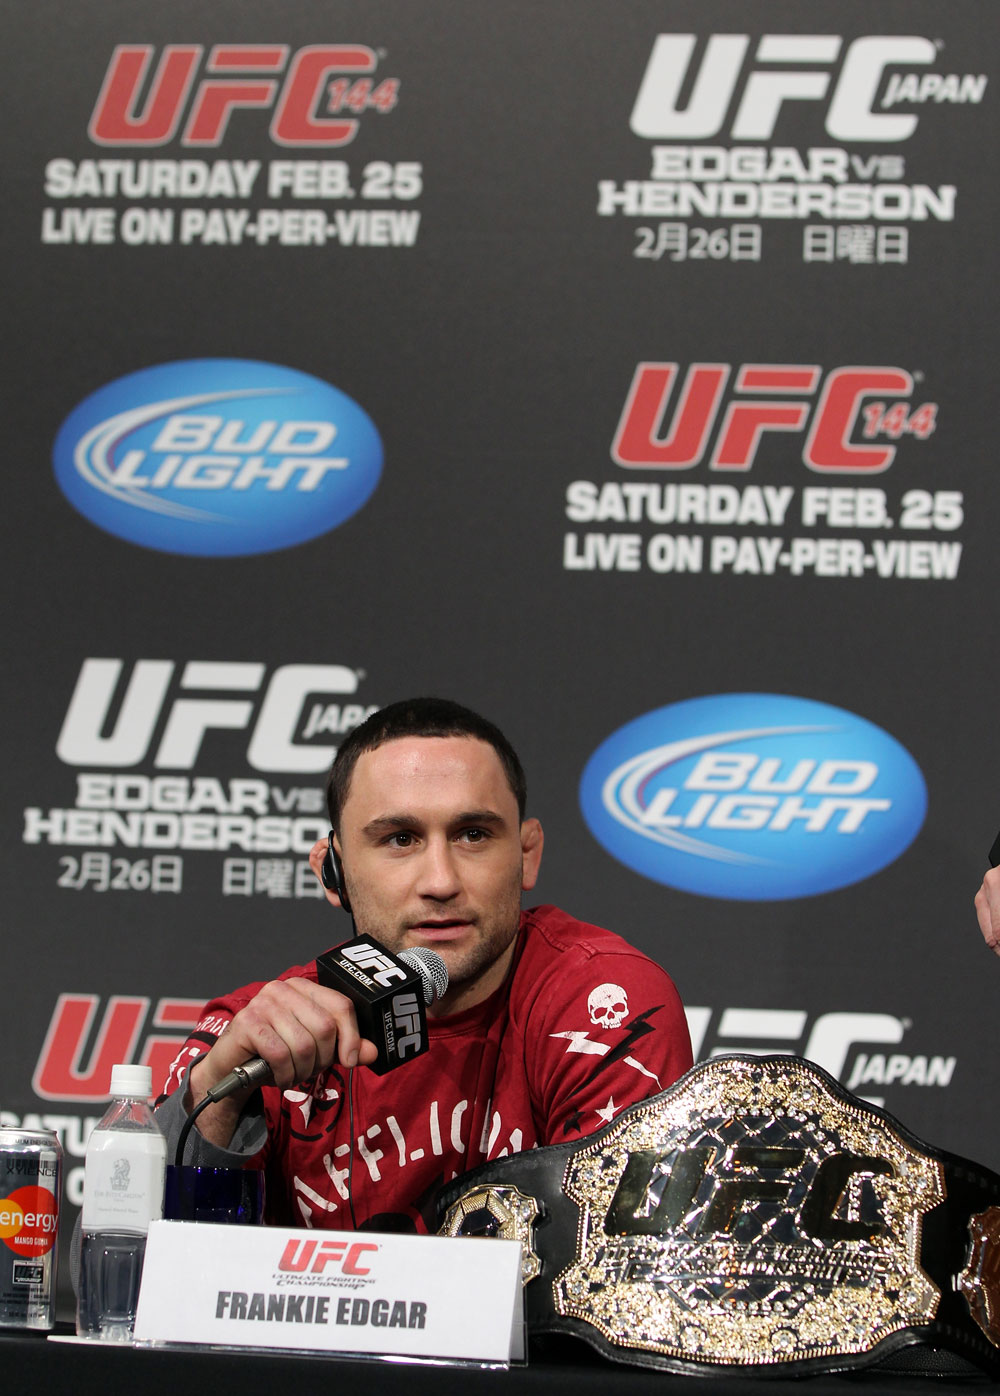 TOKYO, JAPAN - FEBRUARY 23:  UFC Lightweight Champion Frankie Edgar attends the final UFC 144 pre-fight press conference at the Ritz-Carlton Hotel on February 23, 2012 in Tokyo, Japan.  (Photo by Josh Hedges/Zuffa LLC/Zuffa LLC via Getty Images) *** Local Caption *** Frankie Edgar